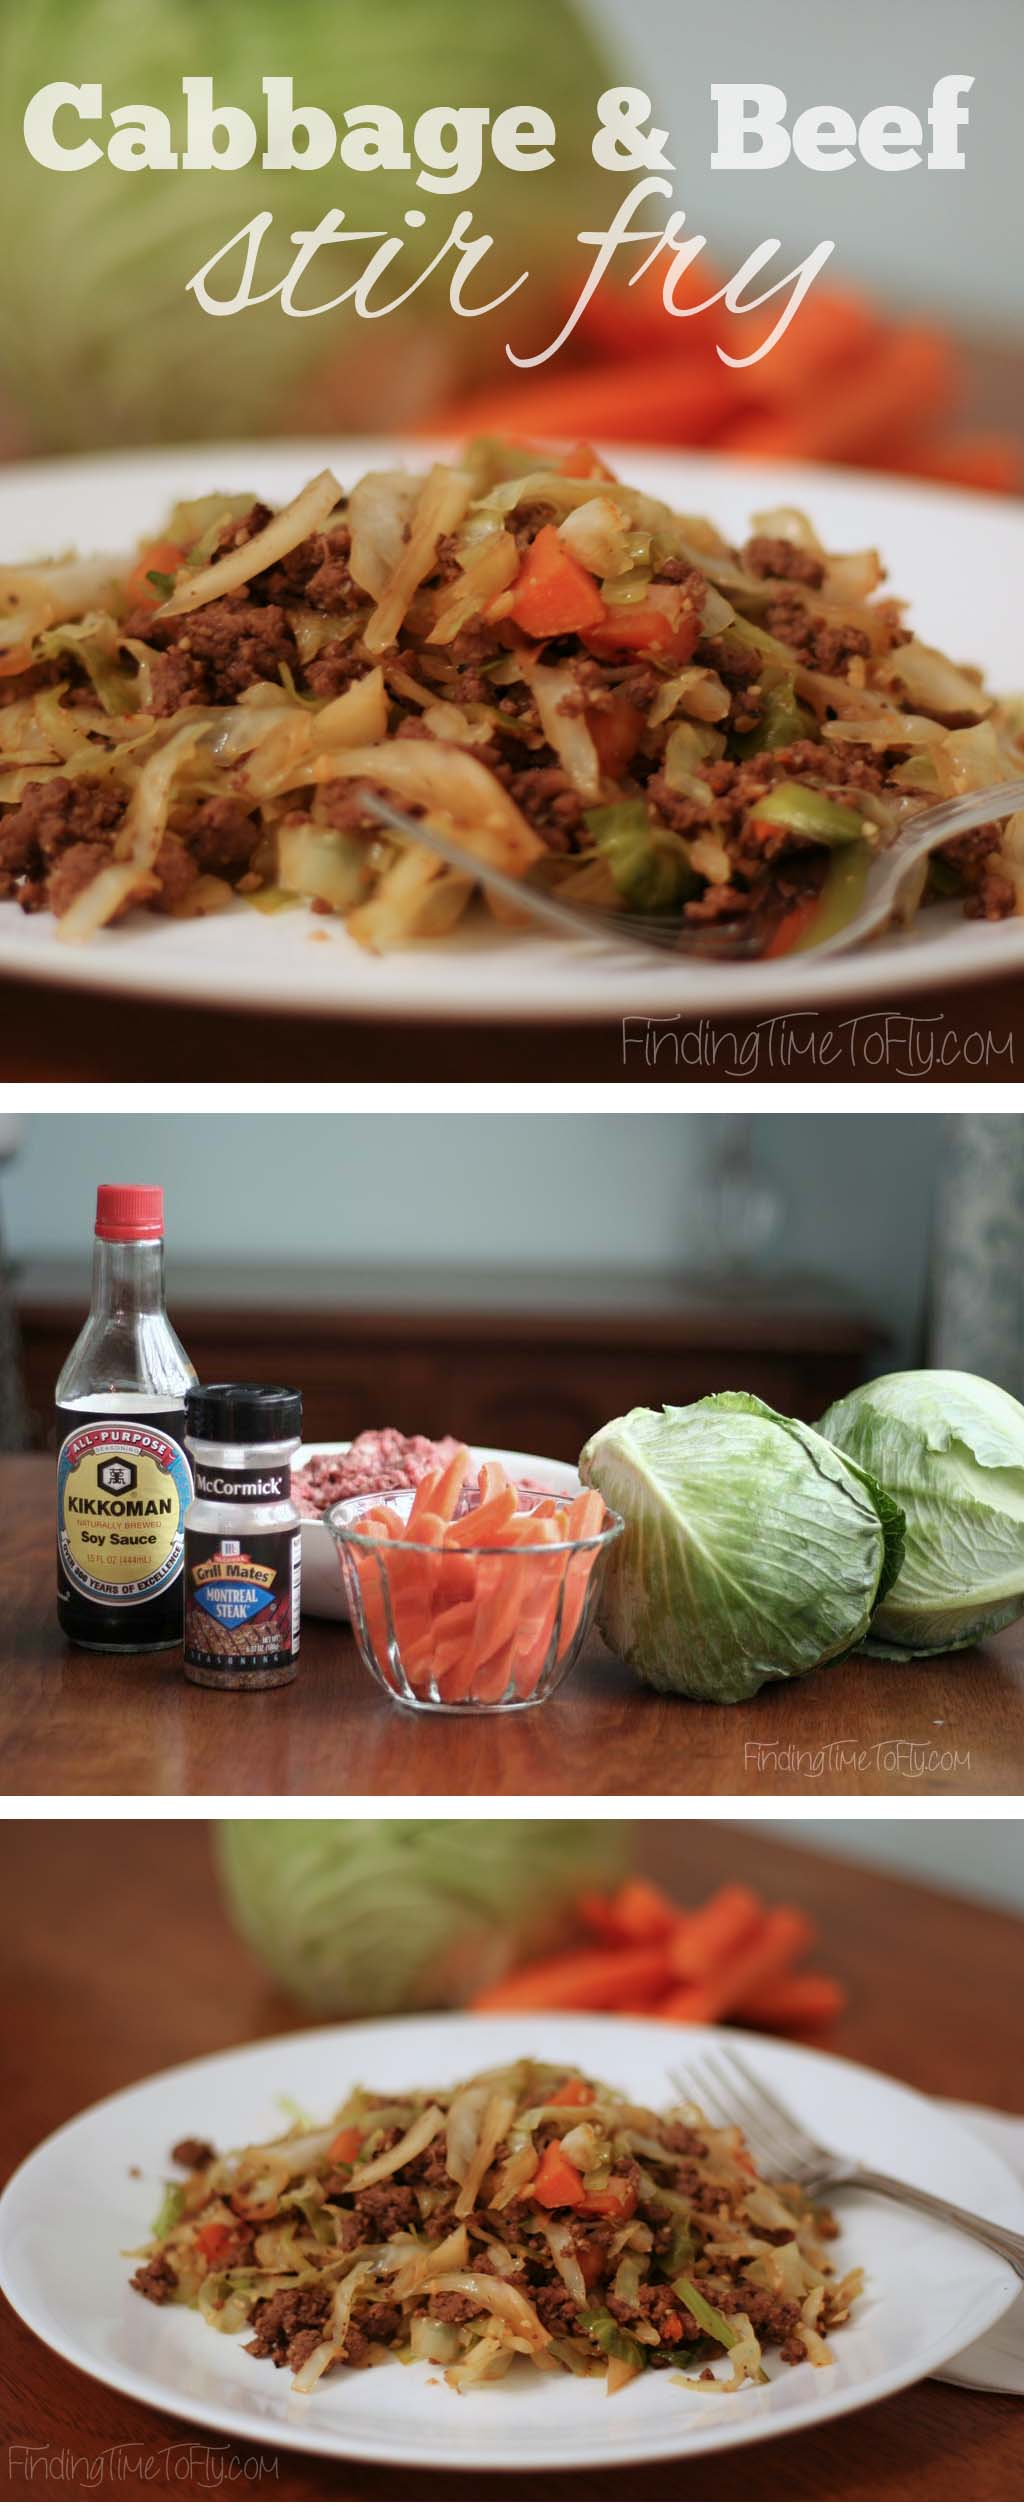 This Cabbage and Beef Stir Fry is a great-tasting, low carb, filling dinner. Even my kids love this stuff!